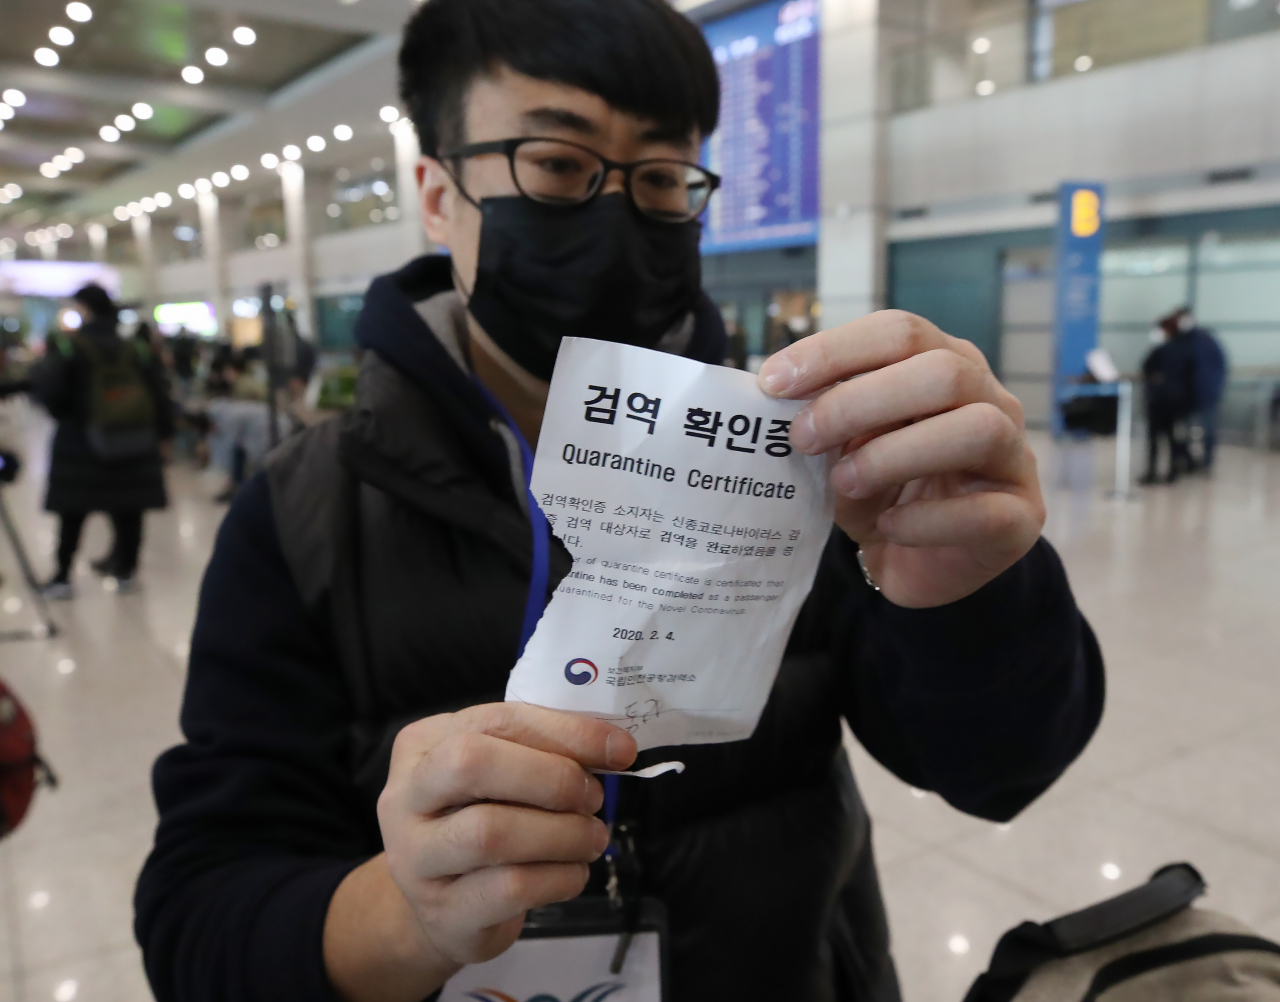 A Chinese national shows a certificate stating the holder has been cleared by Korean quarantine authorities upon arrival at Incheon Airport on Tuesday. (Yonhap)